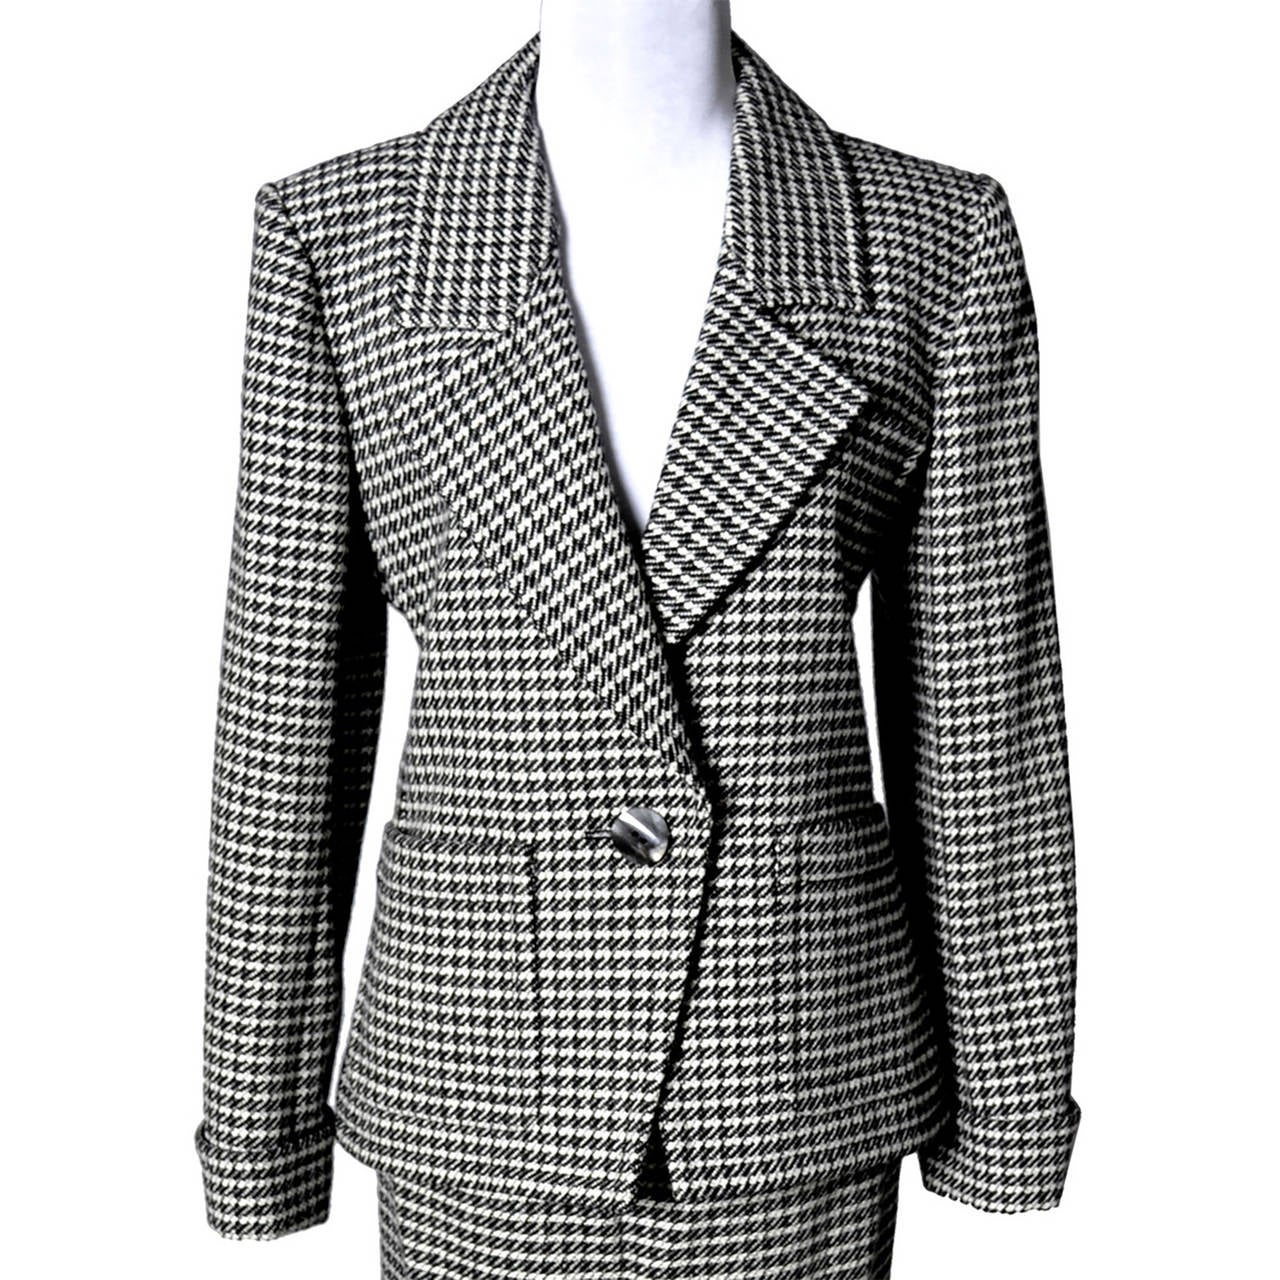 YSL Vintage Suit Houndstooth Wool Skirt Blazer Yves Saint Laurent Rive Gauche For Sale 3